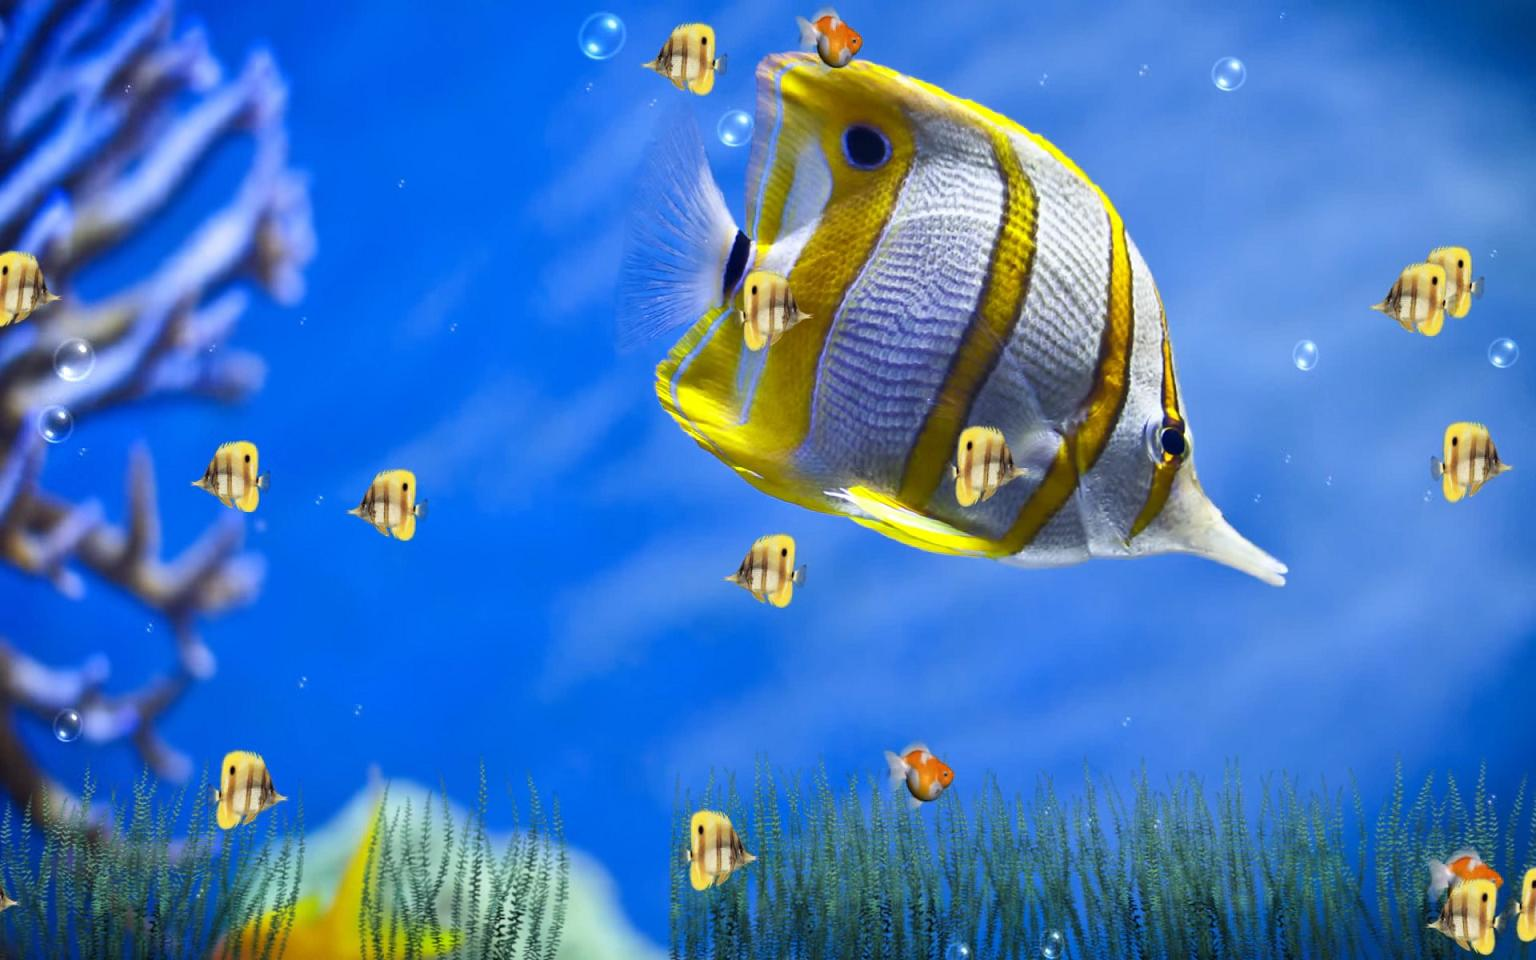 Marine Life Aquarium Animated Wallpaper 1.0